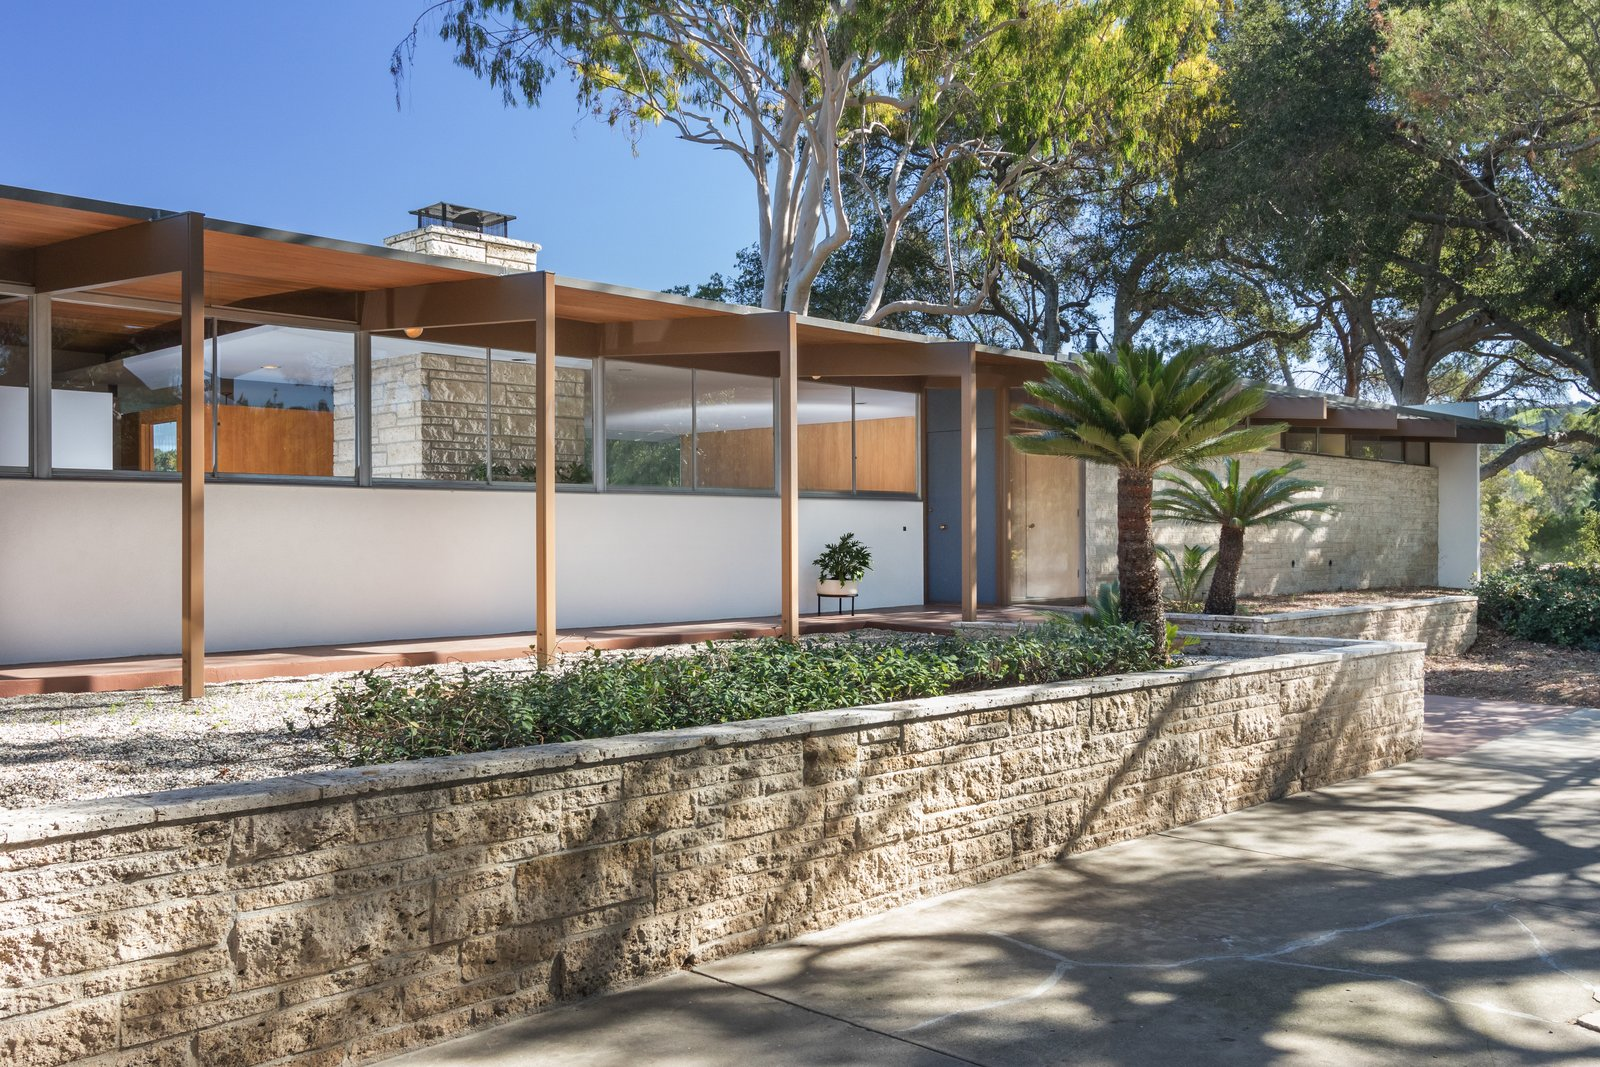 Originally sited on 14 acres of avocado and lime trees, the 2,580-square-foot residence was designed by Richard Neutra for James Roberts, a successful businessman in the manufacturing business, and his wife in 1955. A horse and several sheep roamed the property. Listing agent Nate Cole shares this anecdote: Tagged: Outdoor, Front Yard, and Trees.  Photo 2 of 9 in Nearly Slated For Destruction, a Restored Neutra in West Covina Asks $1.8M